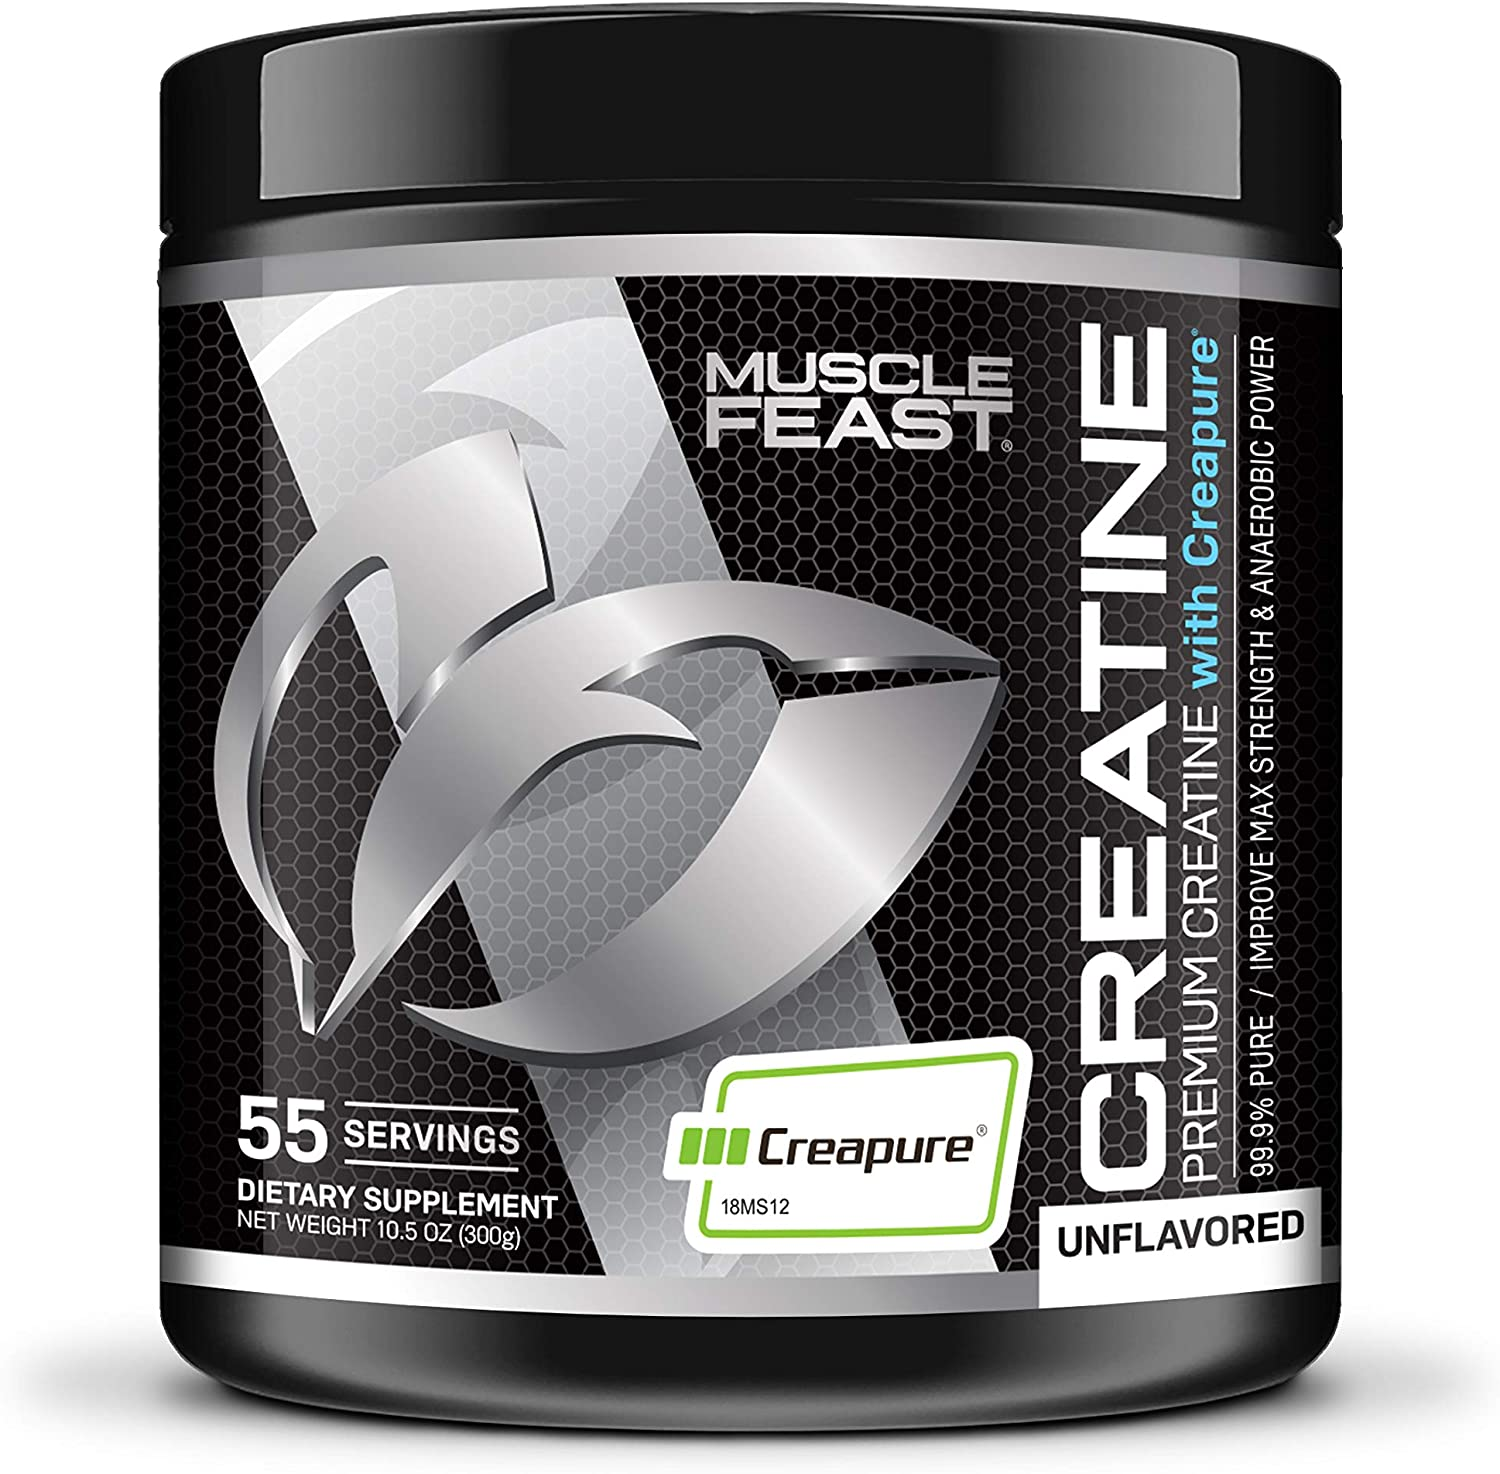 MUSCLE FEAST Creapure Creatine Monohydrate Powder | Premium Pre-Workout or Post-Workout | Easy to Mix, Gluten-Free, Safe and Pure, Kosher Certified (300g, Unflavored)